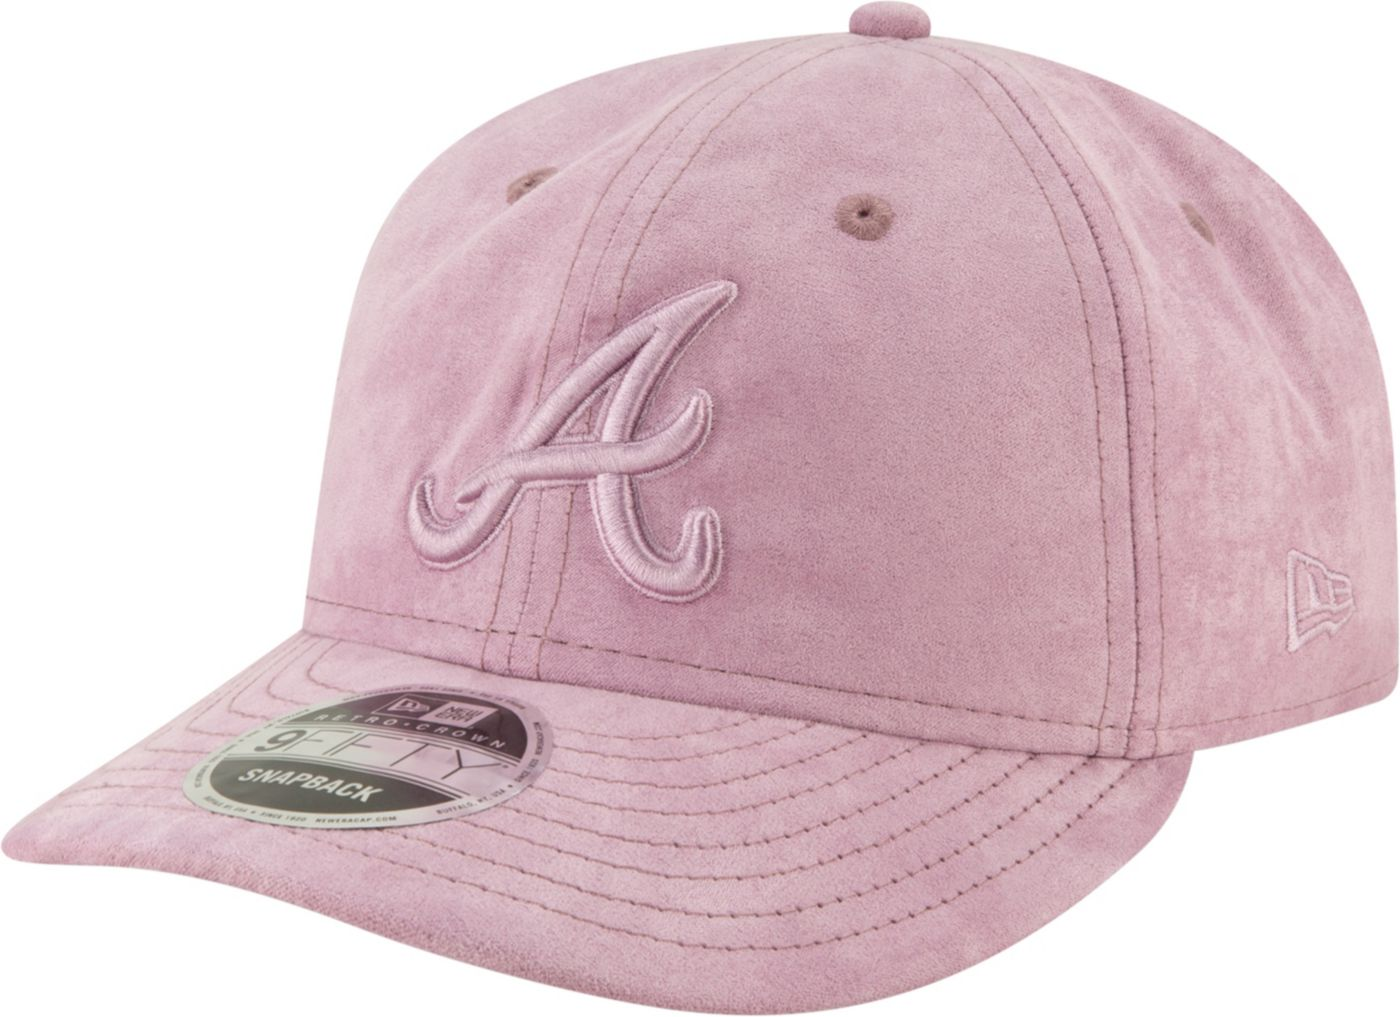 New Era Men's Atlanta Braves 9Fifty Suede Retro Pink Adjustable Snapback Hat